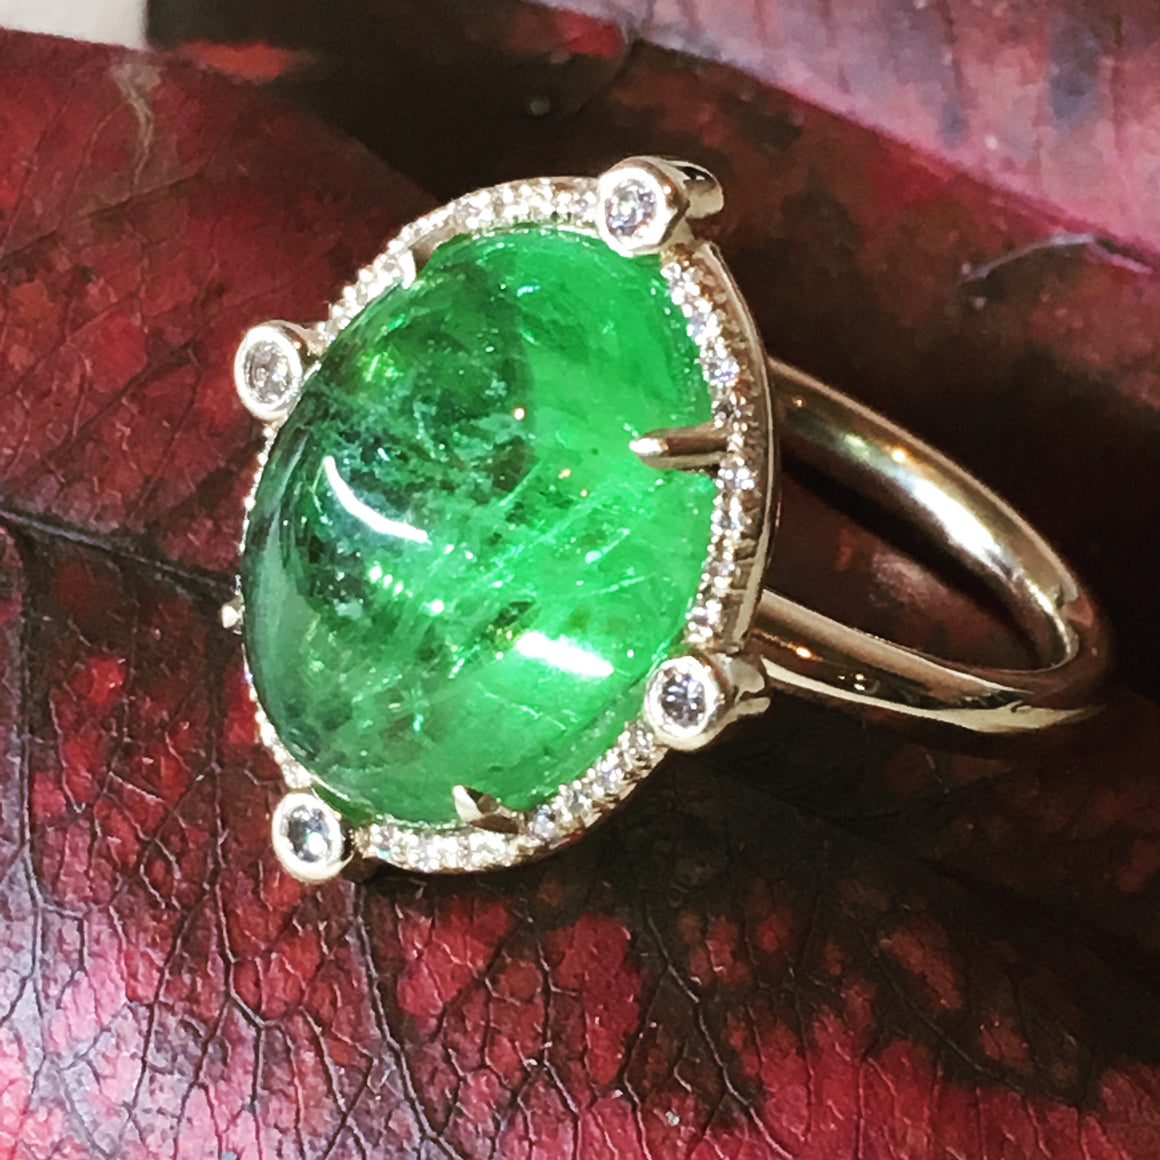 11 carat Tsavorite Garnet and diamond ring in 14ky gold